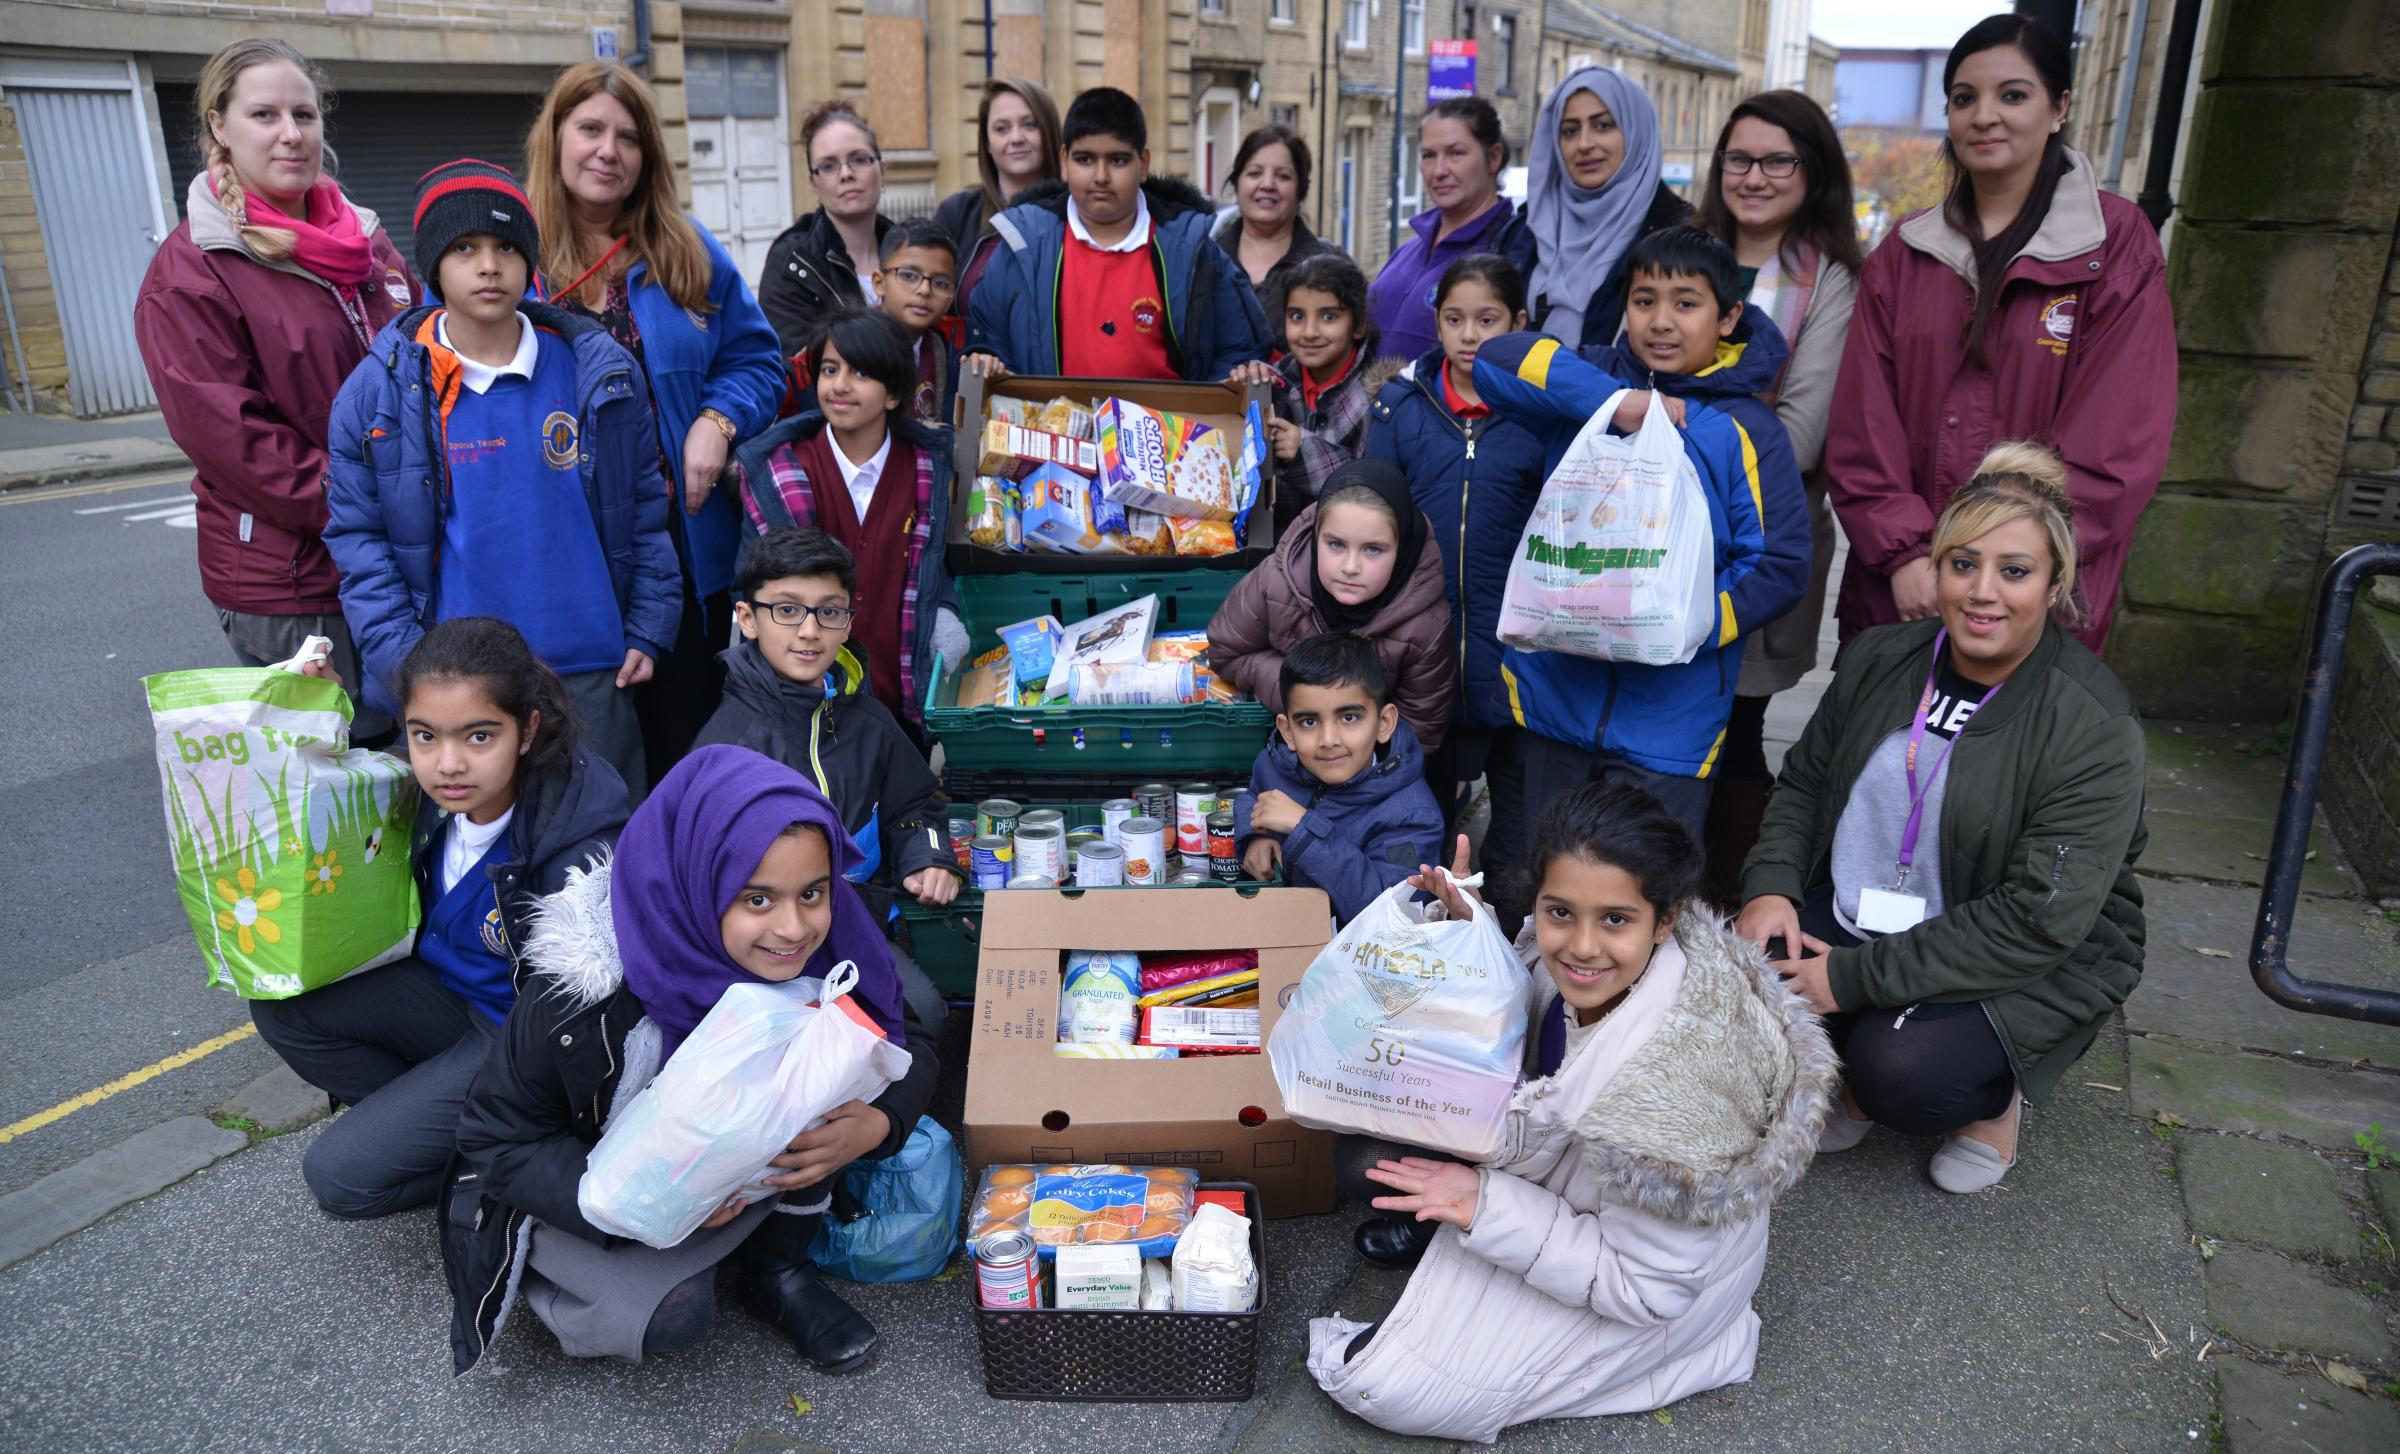 Staff and pupils from Copthorne Primary, Horton Park Primary,  Princeville, Horton Grange, Farnham Primary and Lidget Green visit the Bradford Metropolitan Food Bank